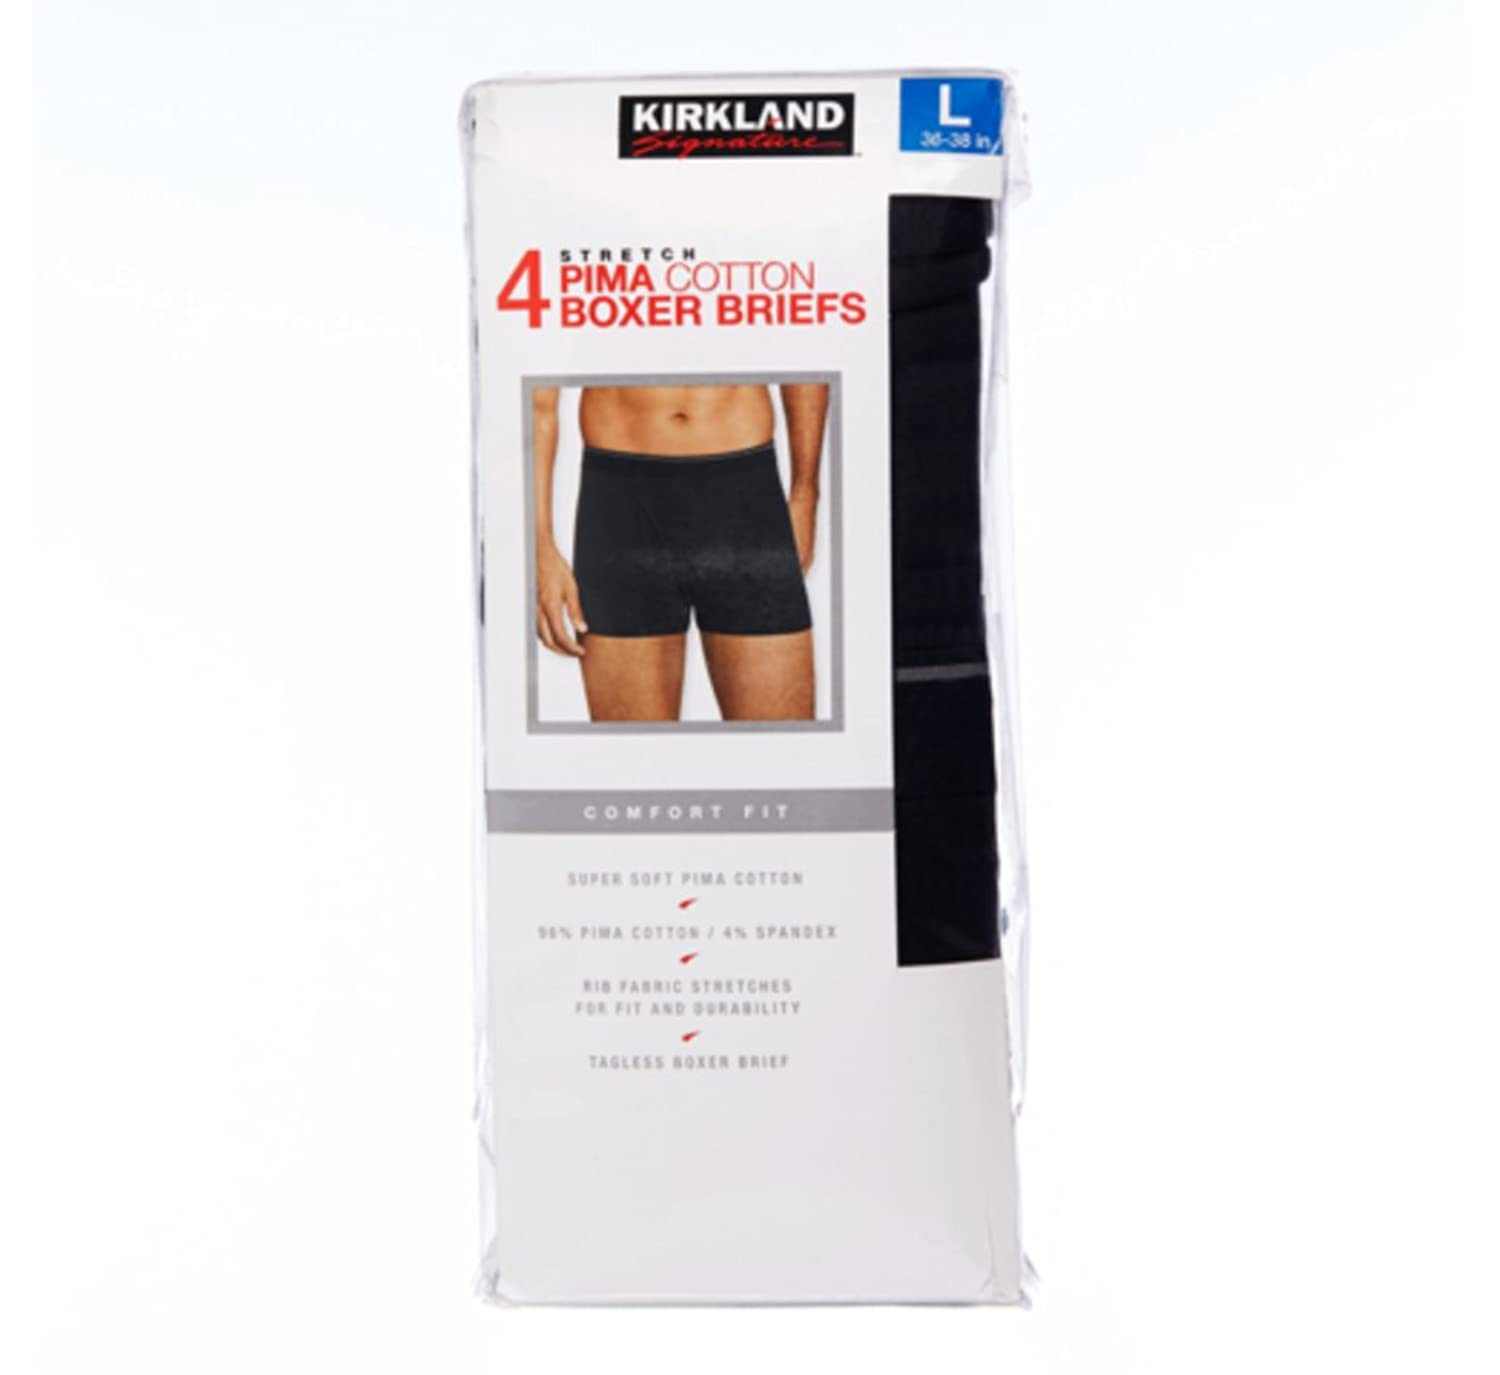 Kirkland black t shirts xl - Kirkland Signature Men S Boxer Brief Pima Cotton 4 Pack At Amazon Men S Clothing Store